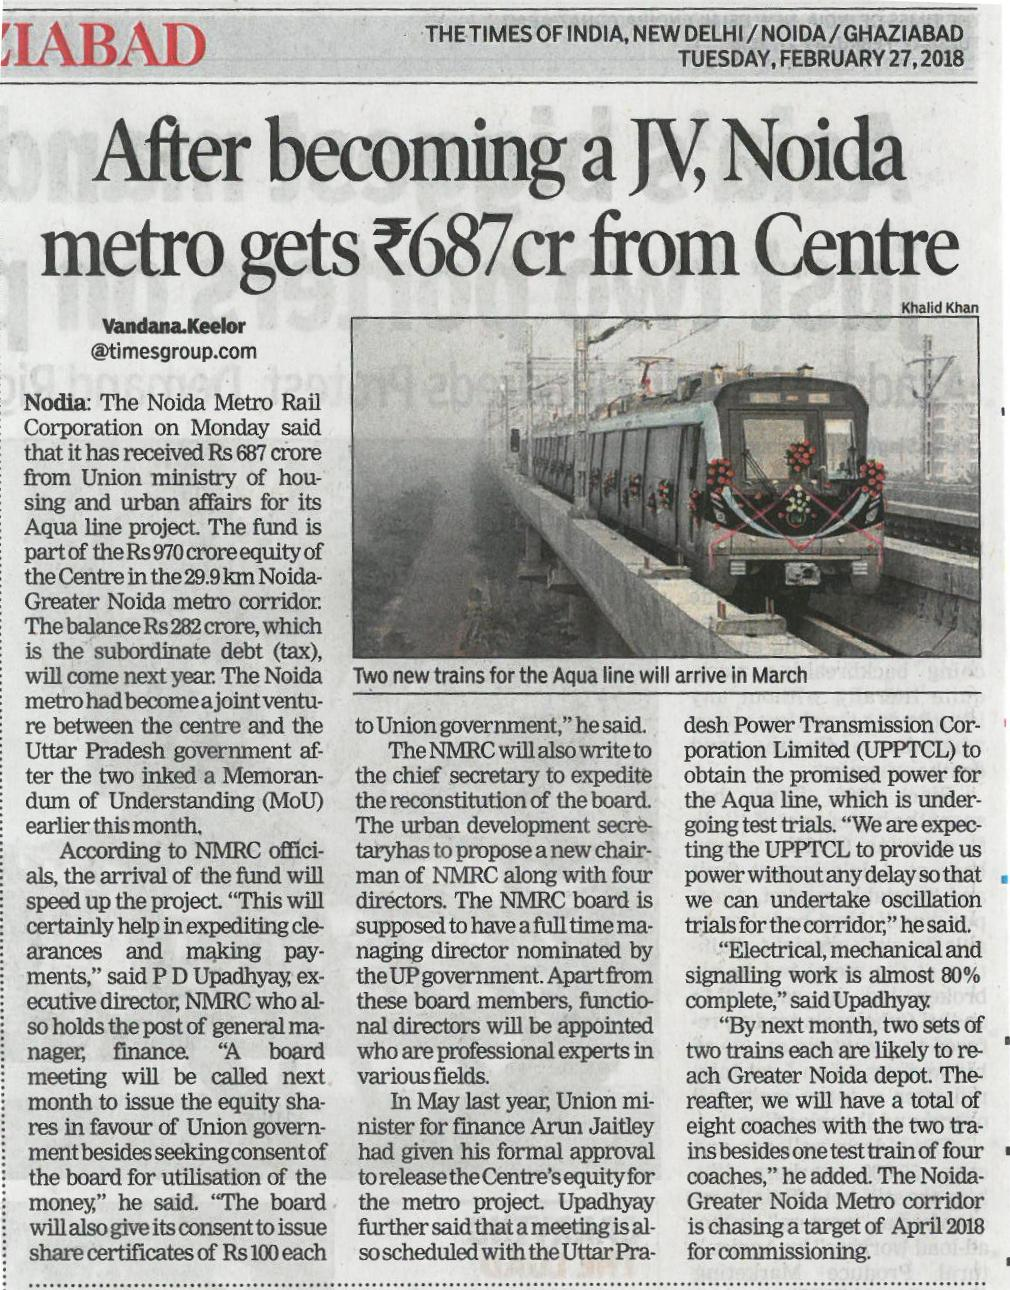 After becoming a JV, Noida metro gets Rs.687 from Centre.